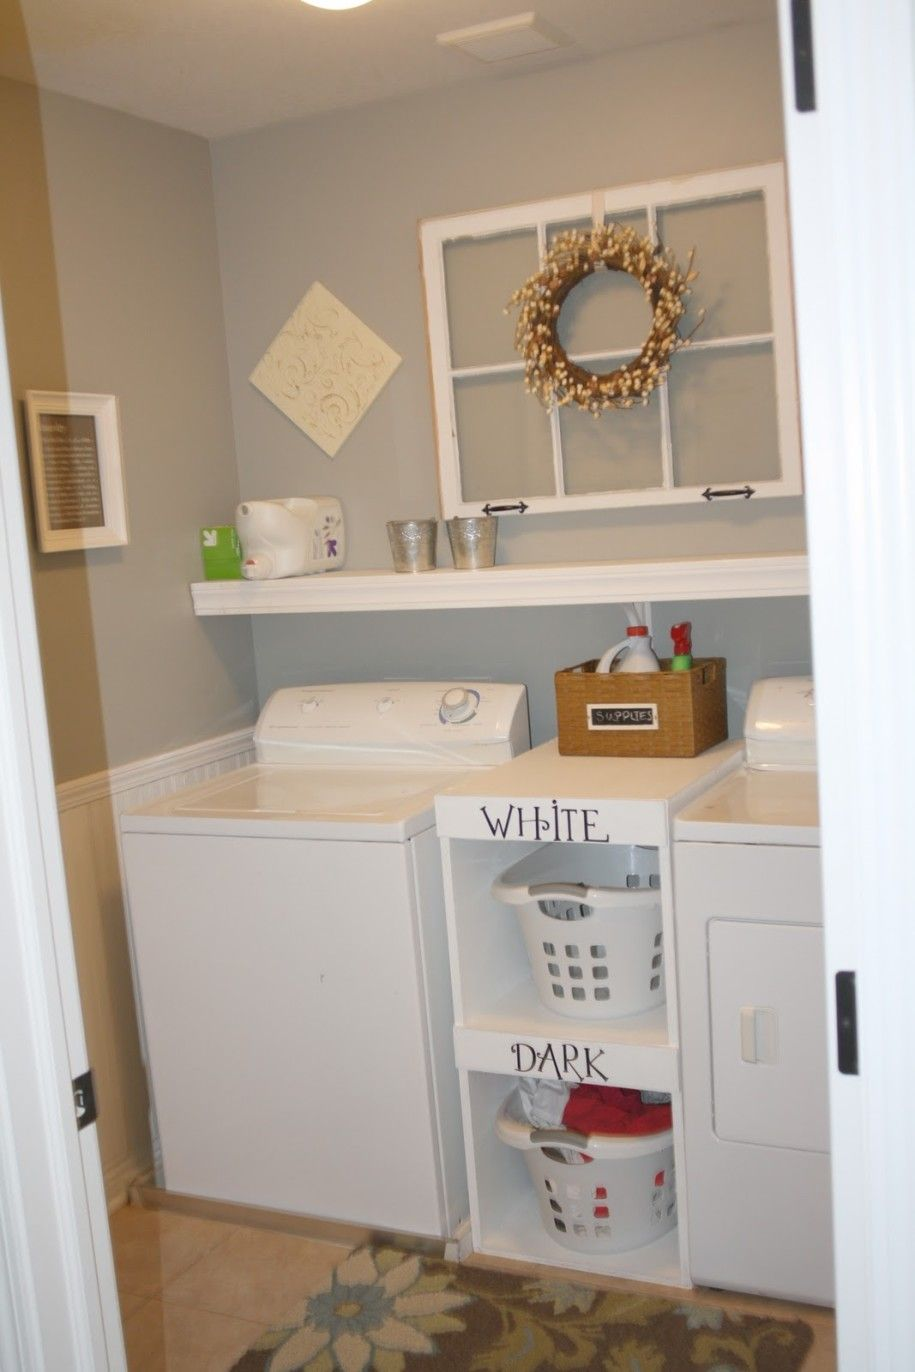 Nothing found for Simple But Elegant Laundry Room Design Ideas Simple Small Laundry  Room With Shelving Ideas